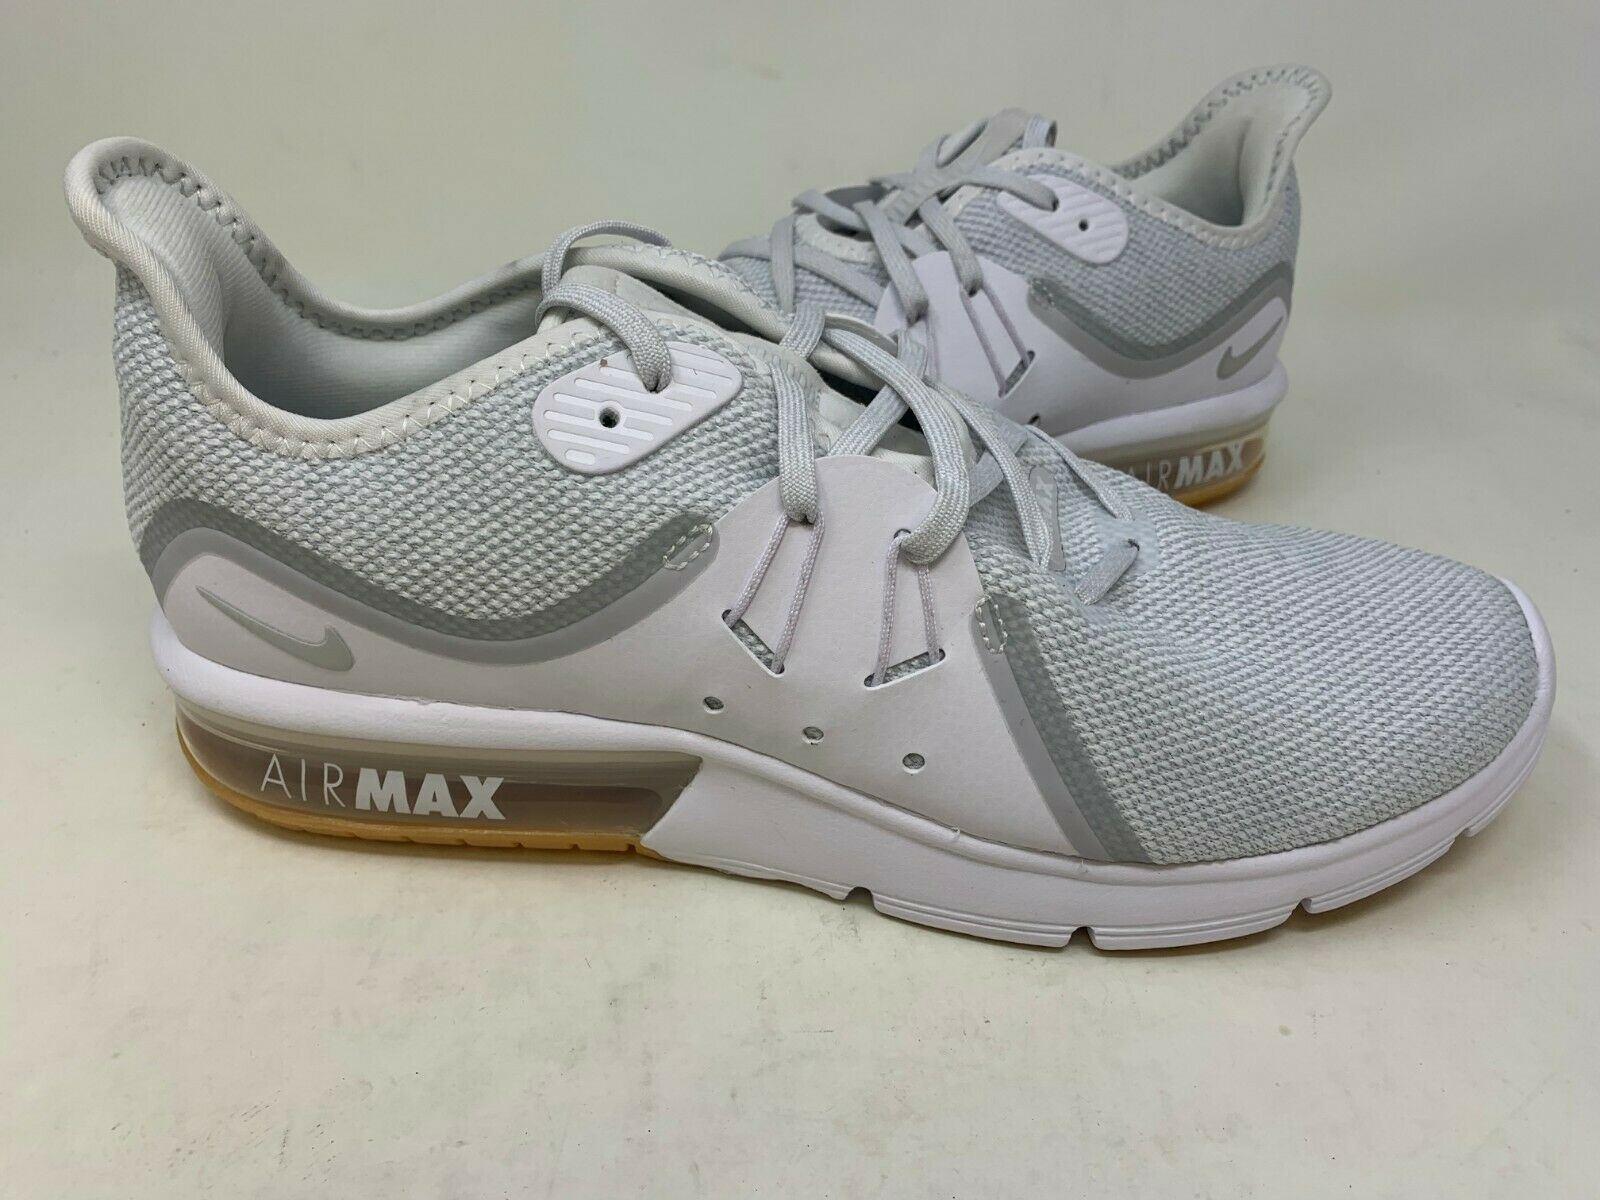 NEW  NIke Men's Air Max Sequent 3 Mens Running shoes Lt Gry Wht R z